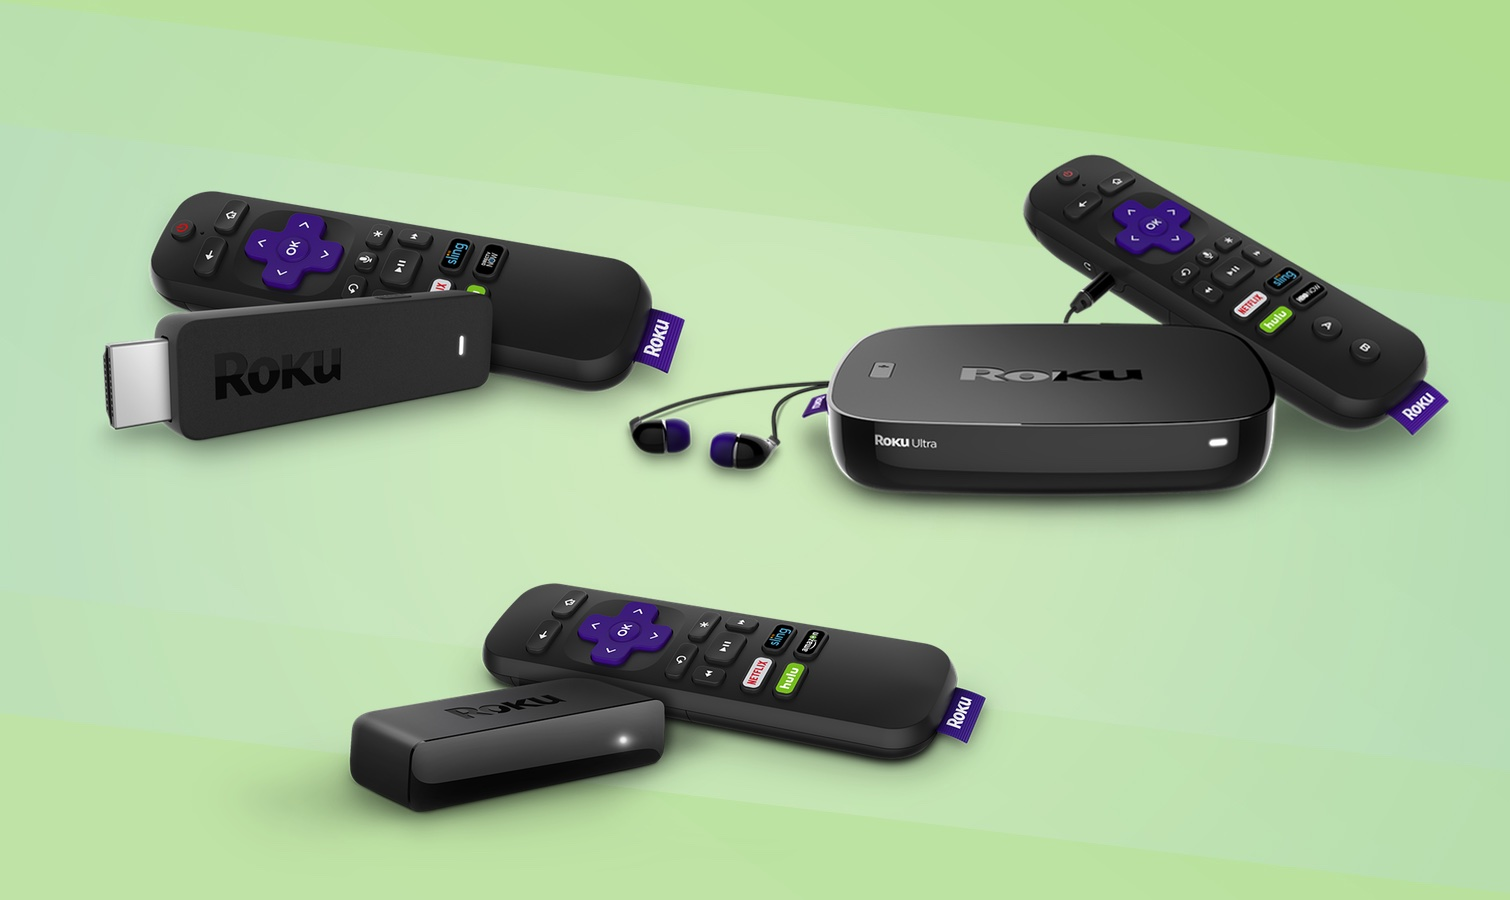 Roku Stick vs Express vs Ultra: Which Streaming Device Is Best for